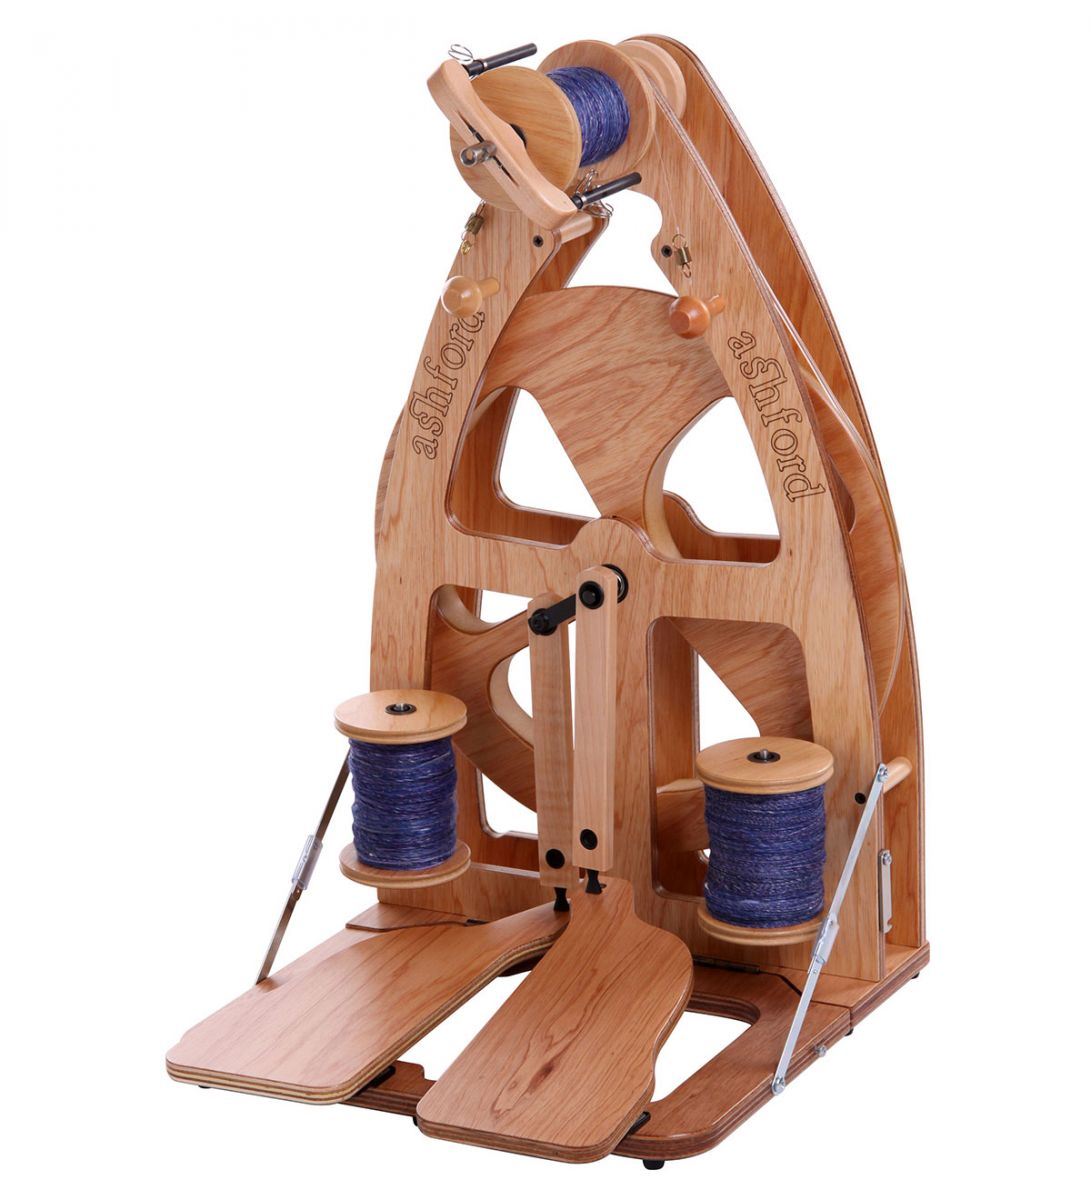 Ashford Joy 2 Spinning Wheel - Double Treadle with Carry Bag